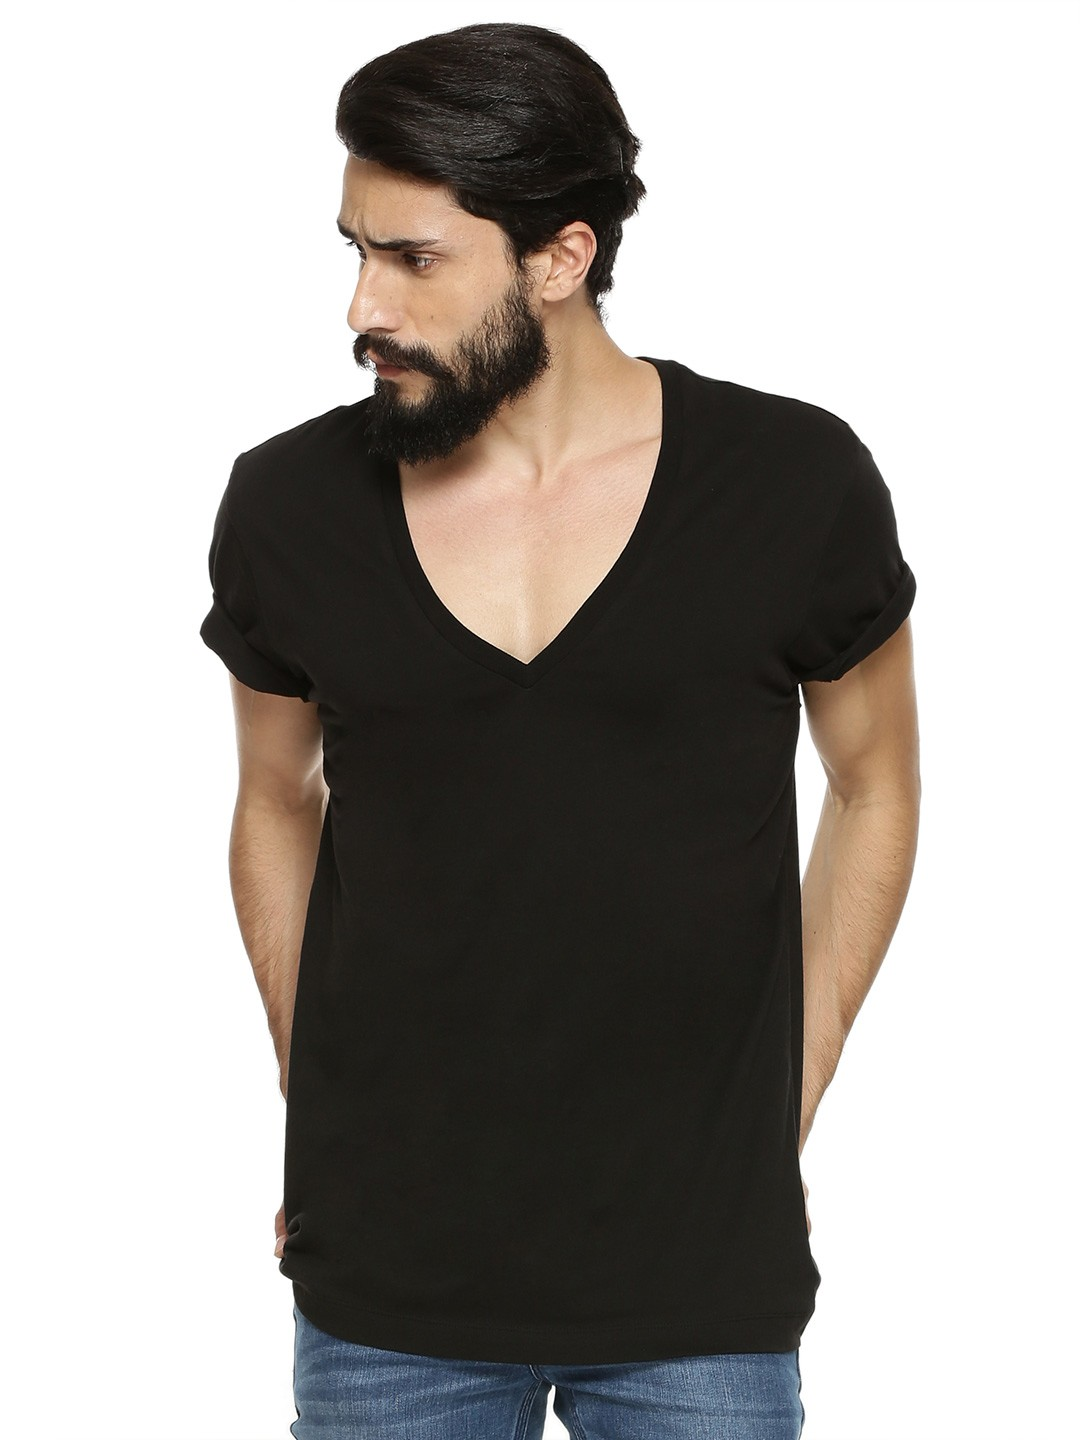 Black t shirt buy online - Koovs Deep V Neck T Shirt